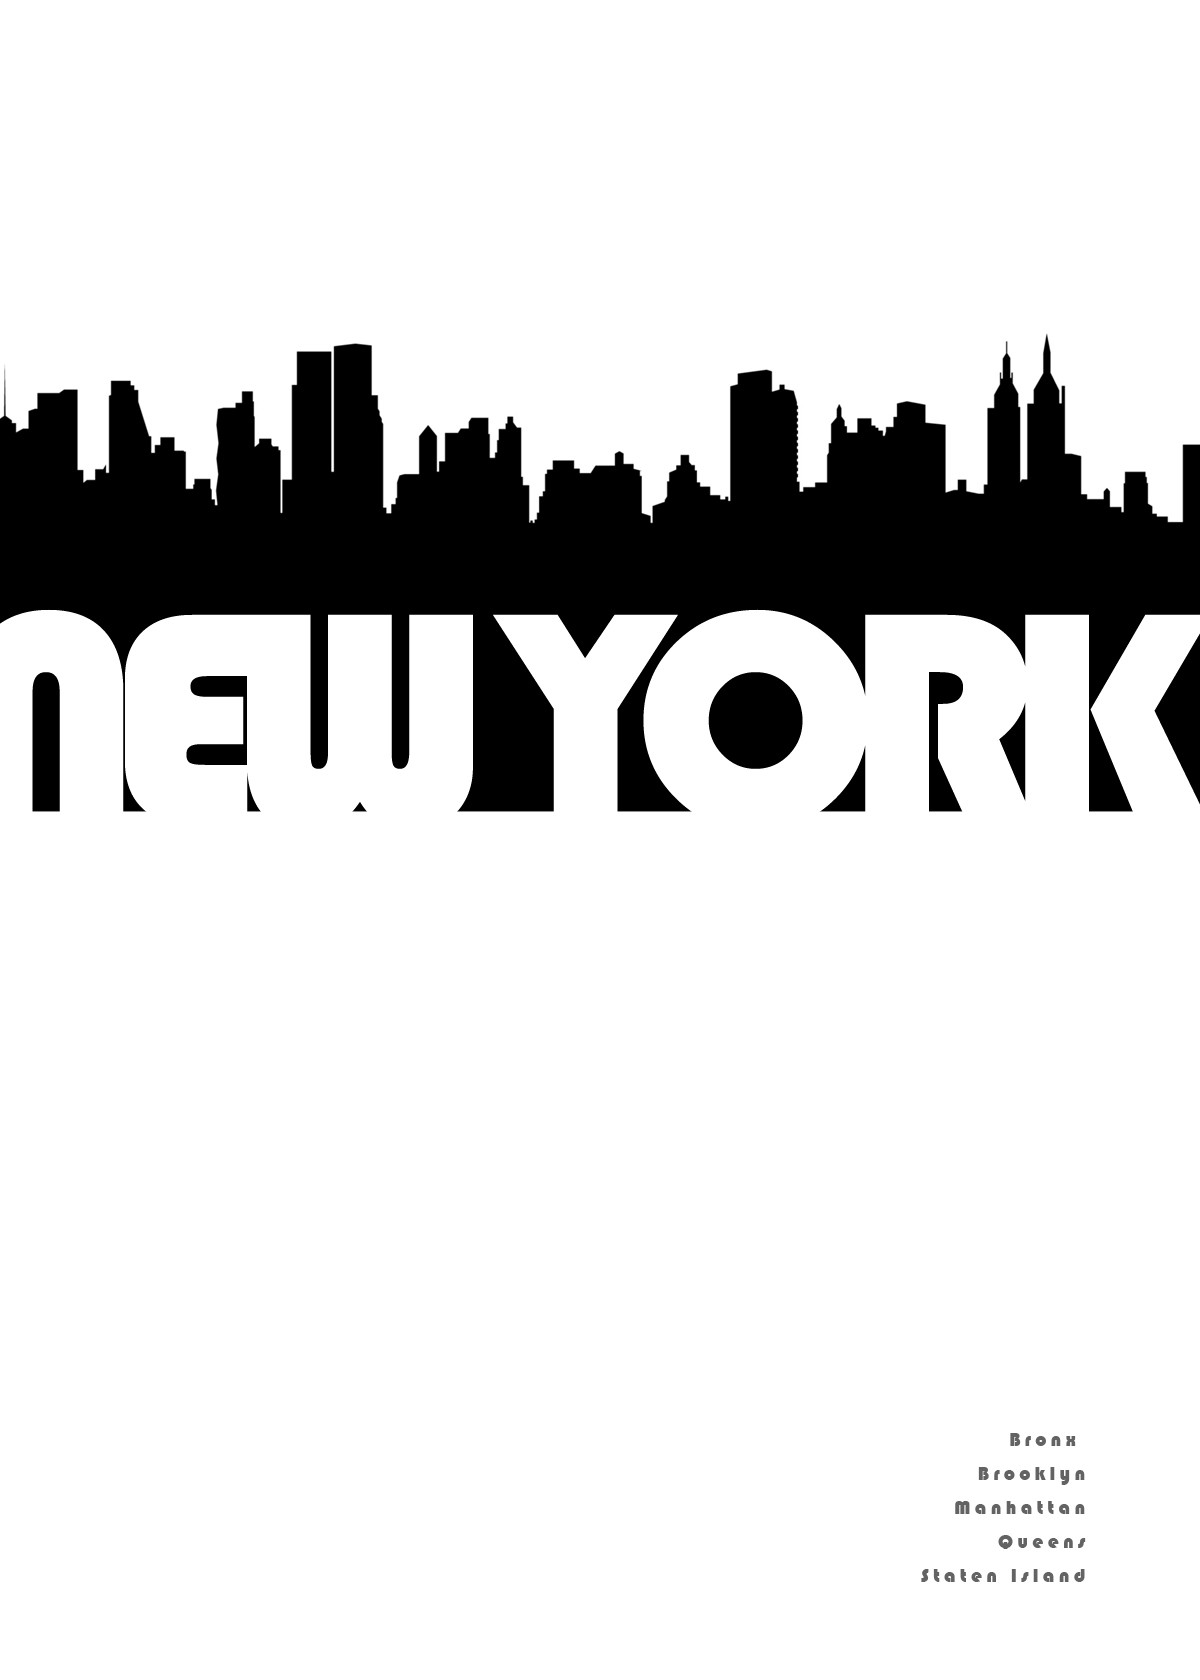 New york clipart black and white jpg royalty free Free Nyc Cliparts, Download Free Clip Art, Free Clip Art on Clipart ... jpg royalty free